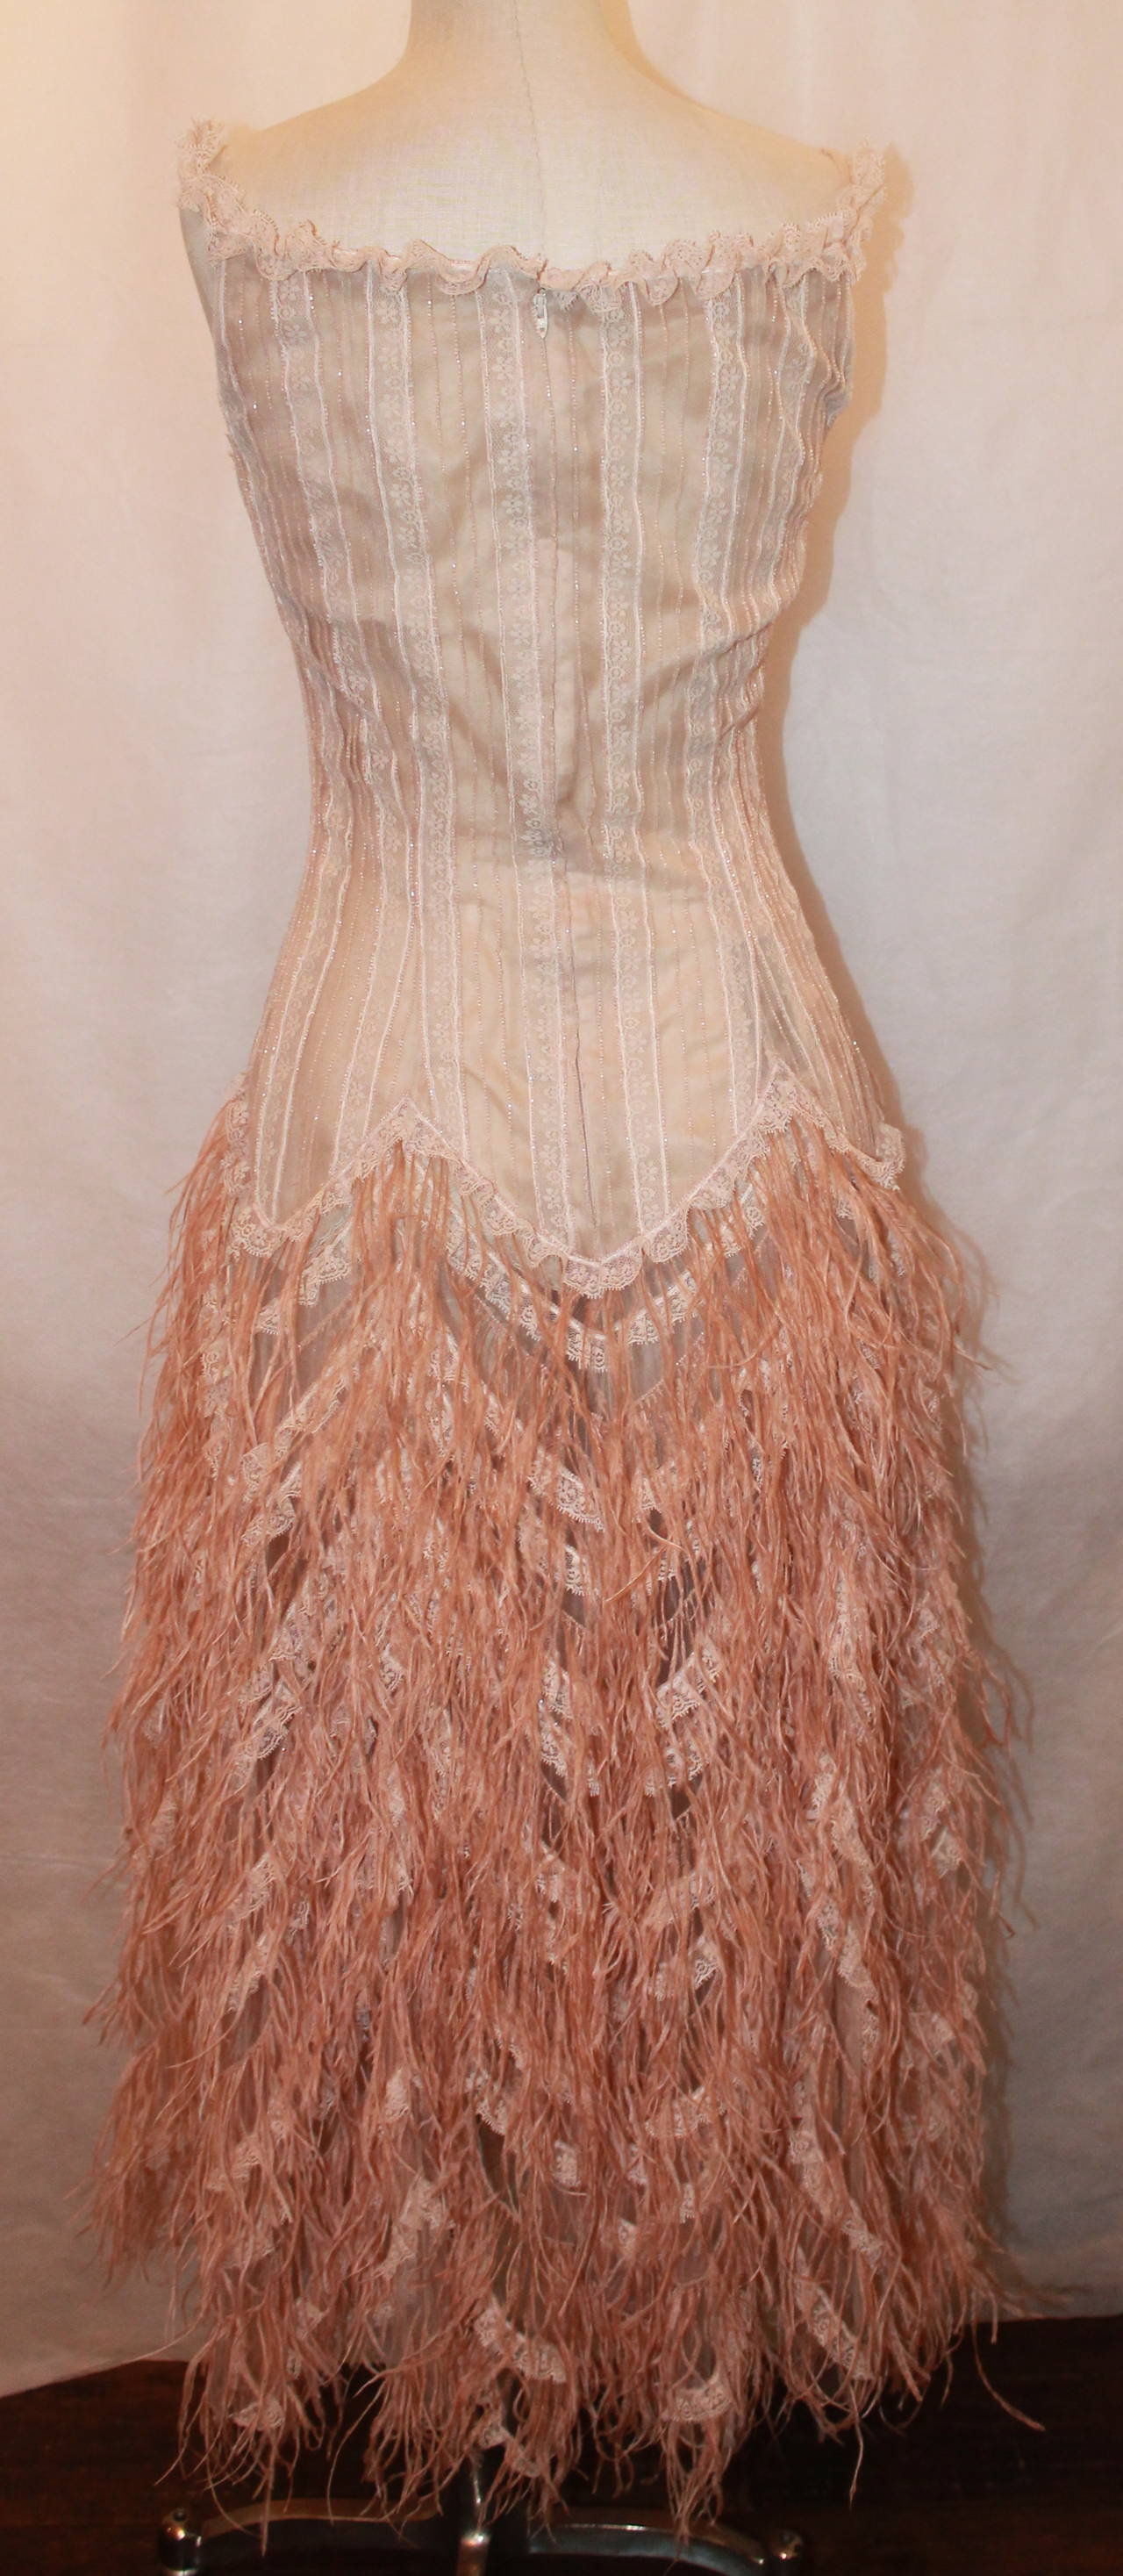 Oscar de la Renta Blush Lace Beaded Gown with Ostrich Feathers & Shawl - M 5